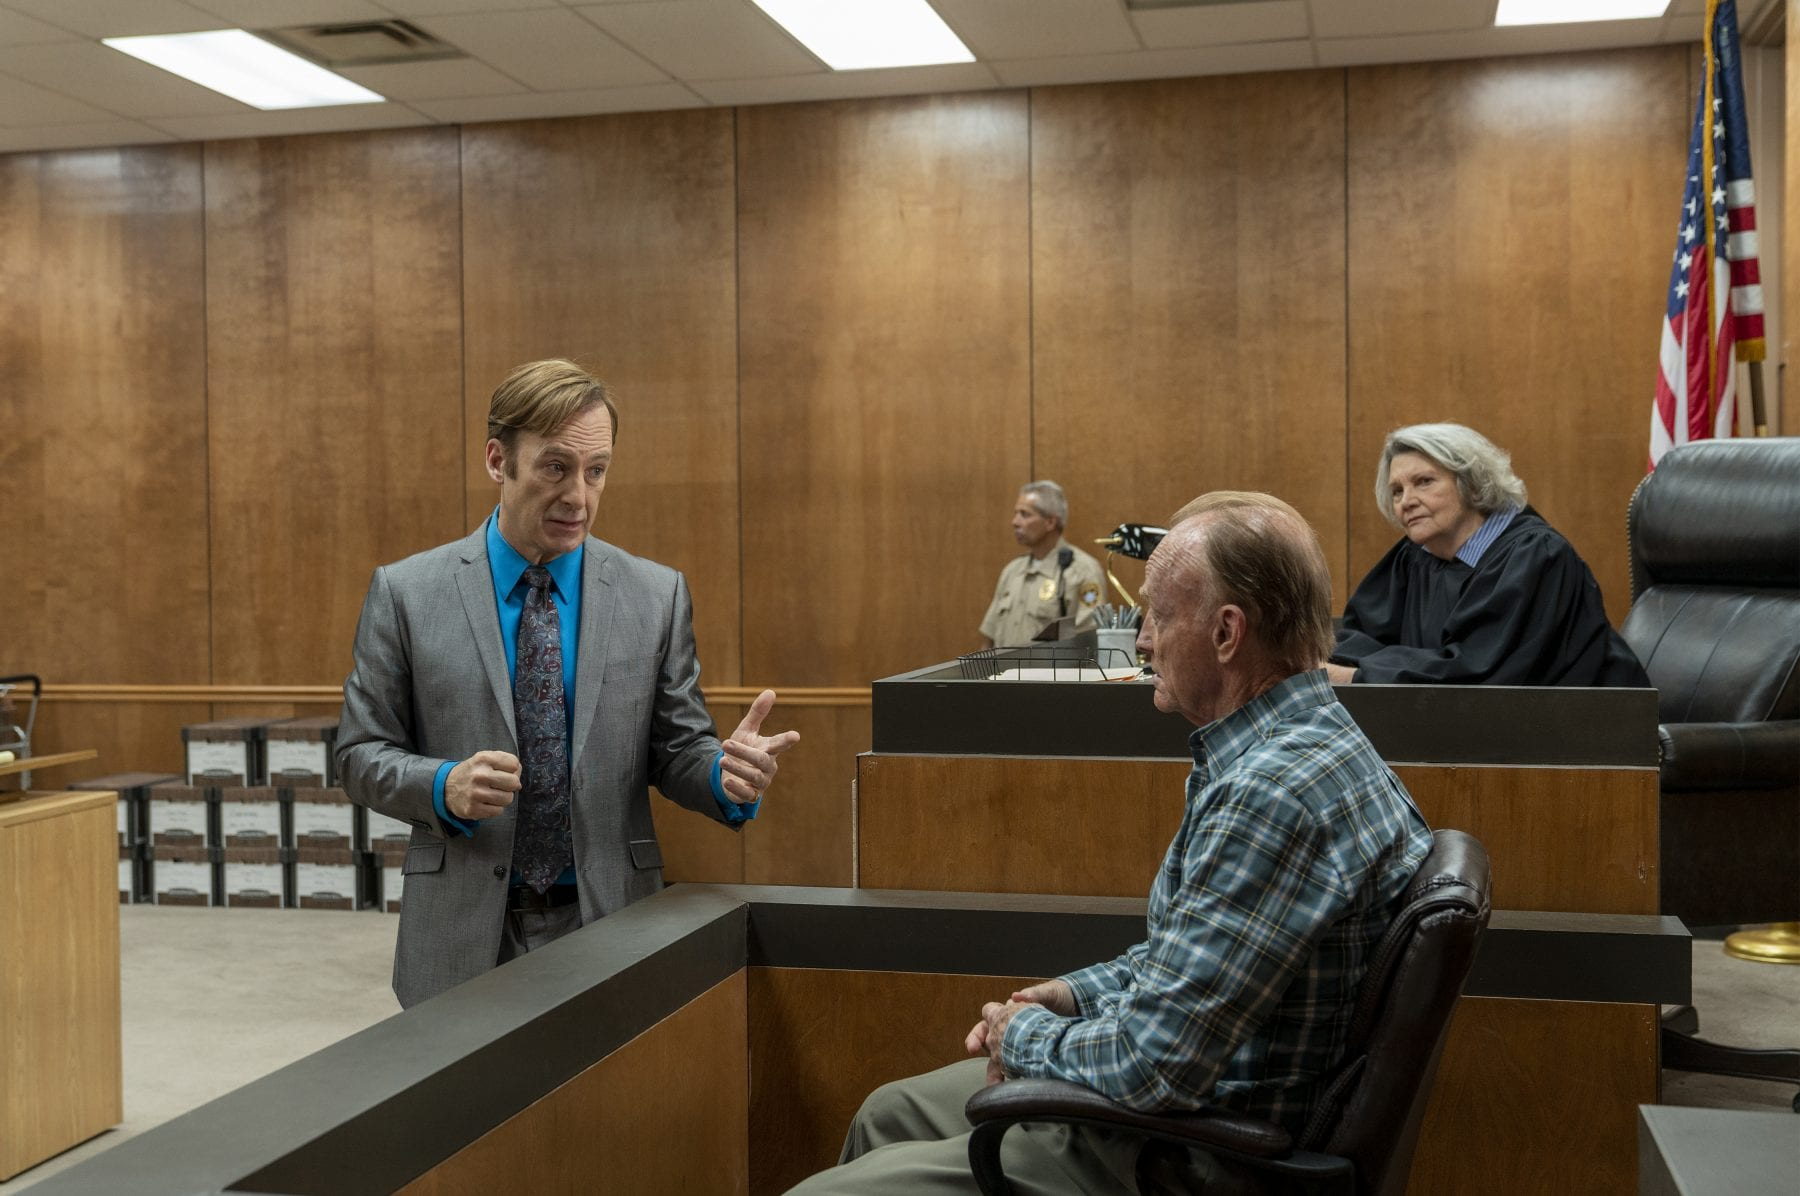 Jimmy questions a witness in the courtroom as the judge looks on